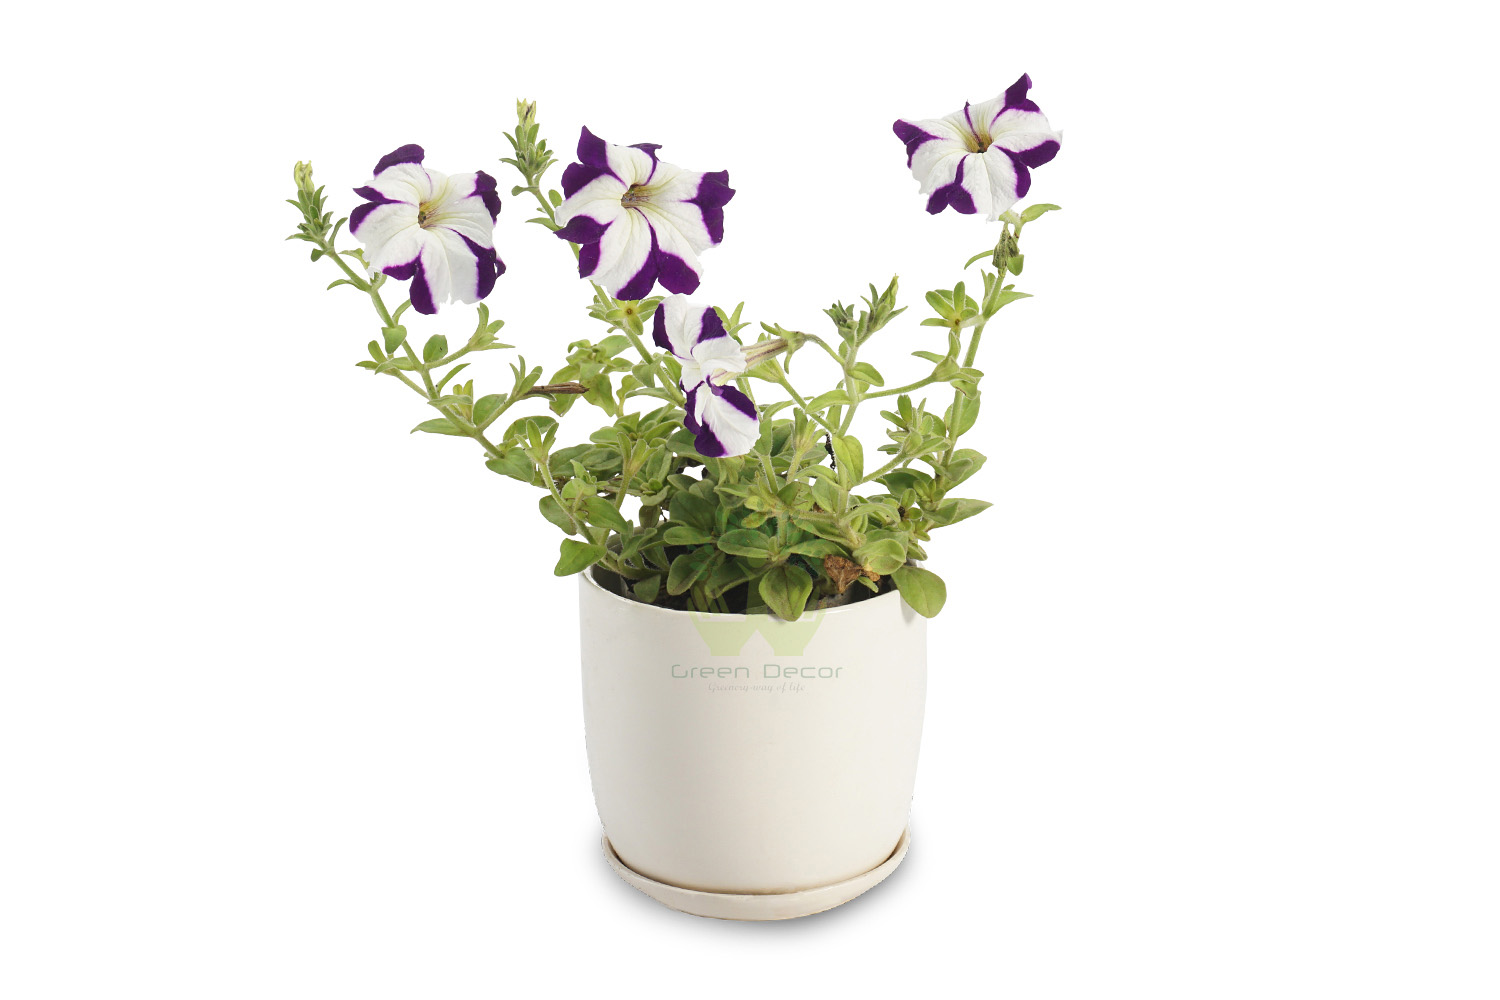 Buy Petunia Voilet Front View , White Pots and seeds in Delhi NCR by the best online nursery shop Greendecor.